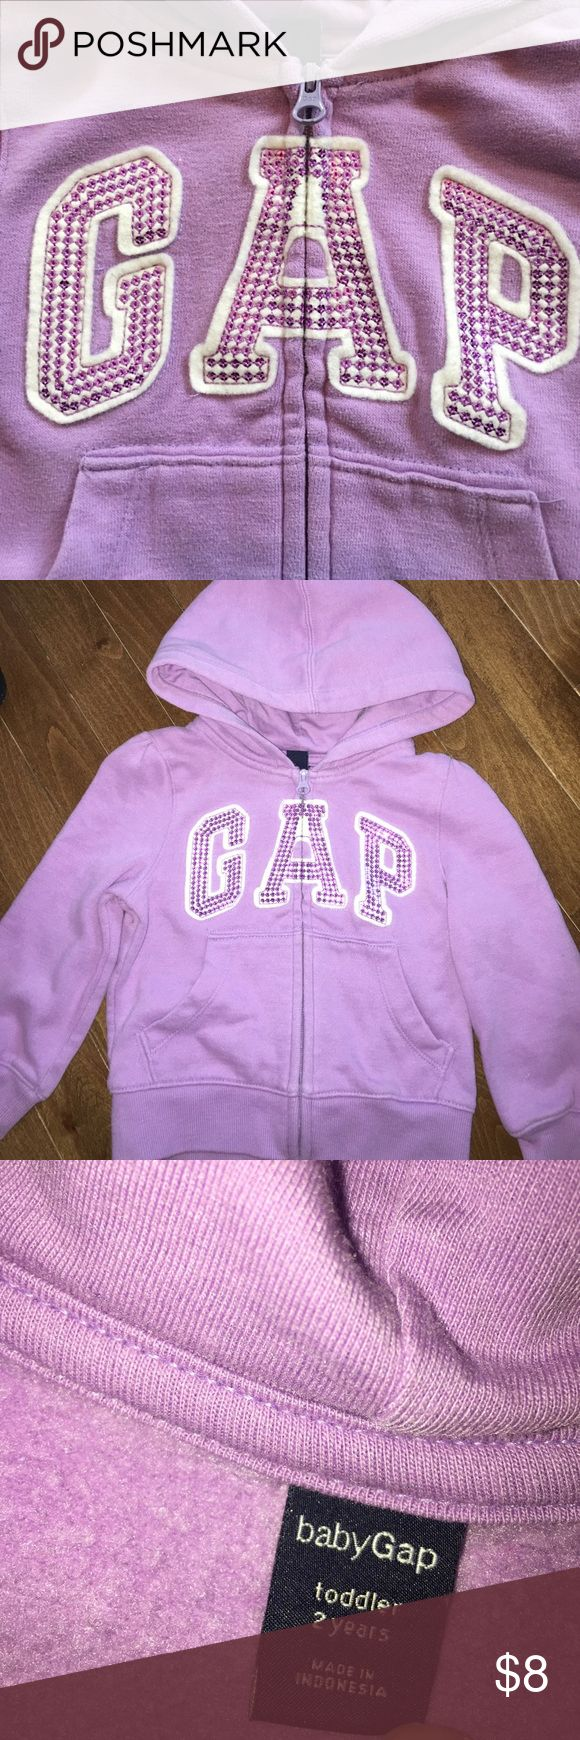 Purple zip up sweatshirt GAP purple zip up sweatshirt GAP Shirts & Tops Sweatshirts & Hoodies